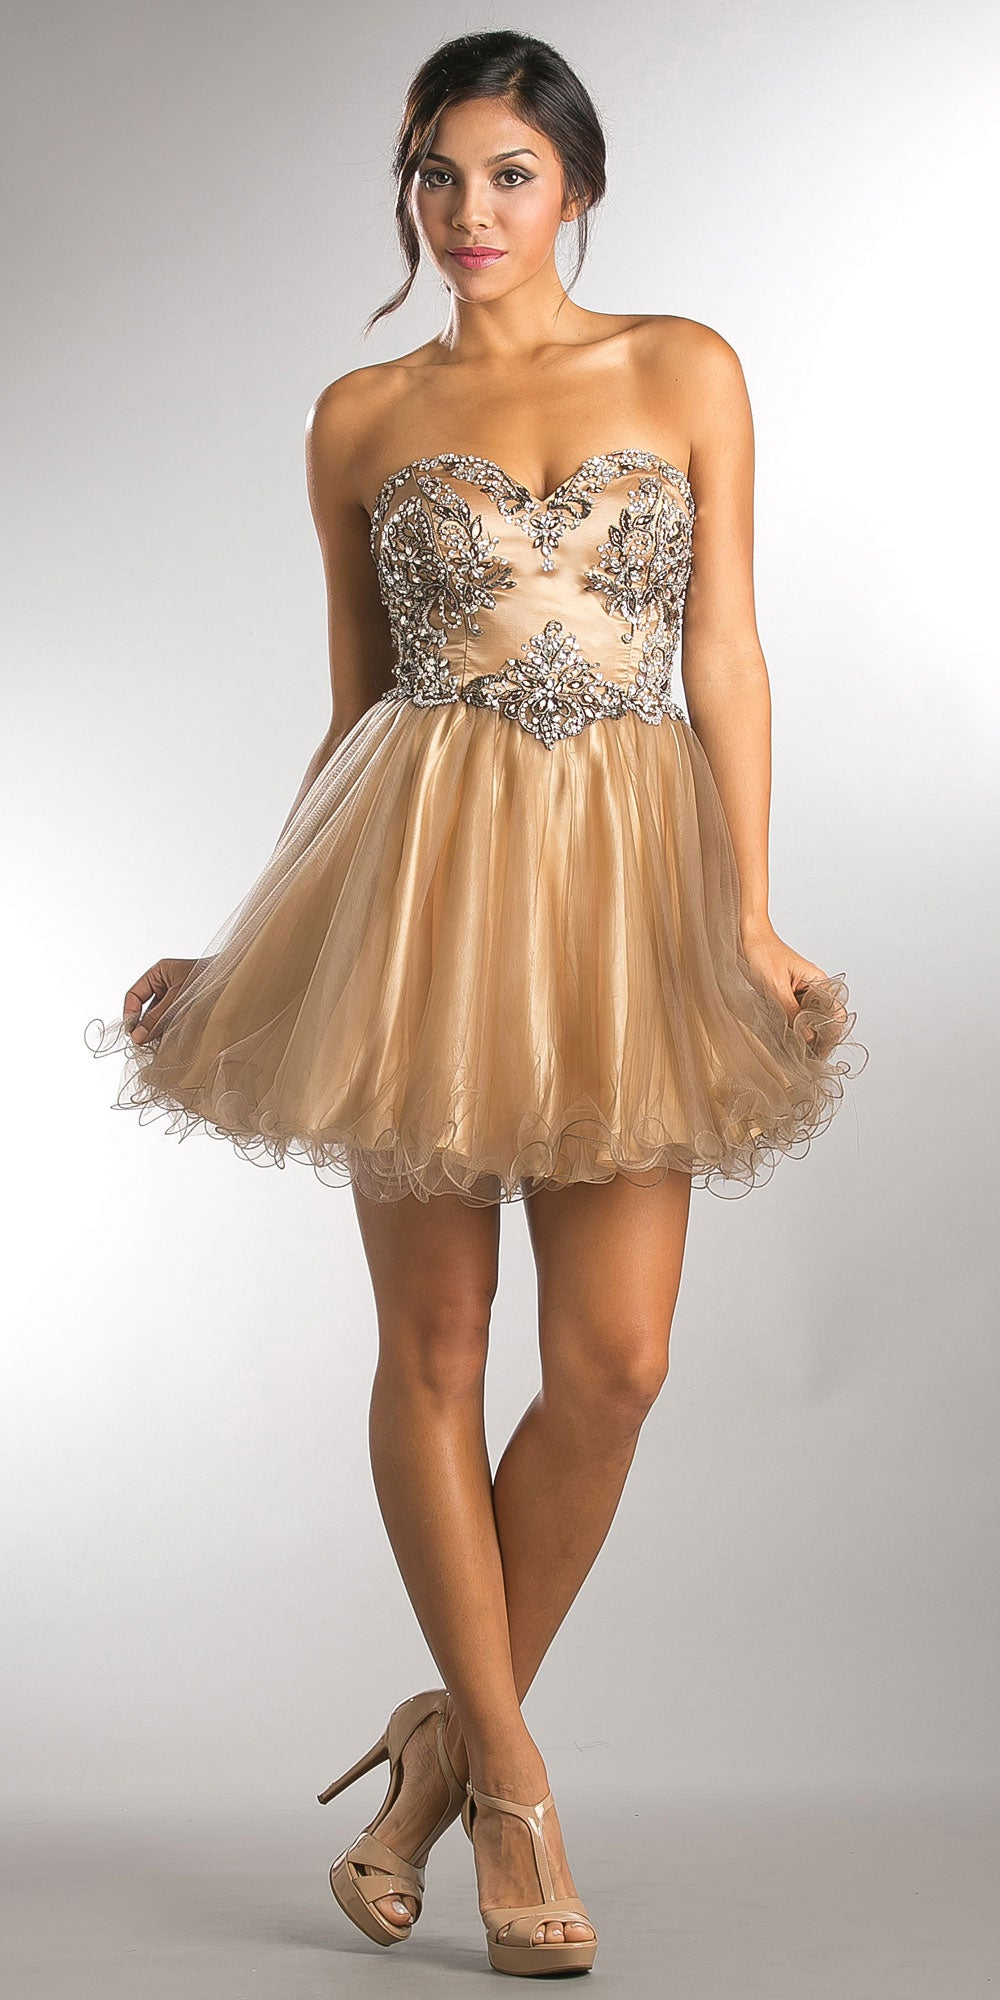 Main image of Strapless Satin Beaded Top Short Tulle Homecoming Dress